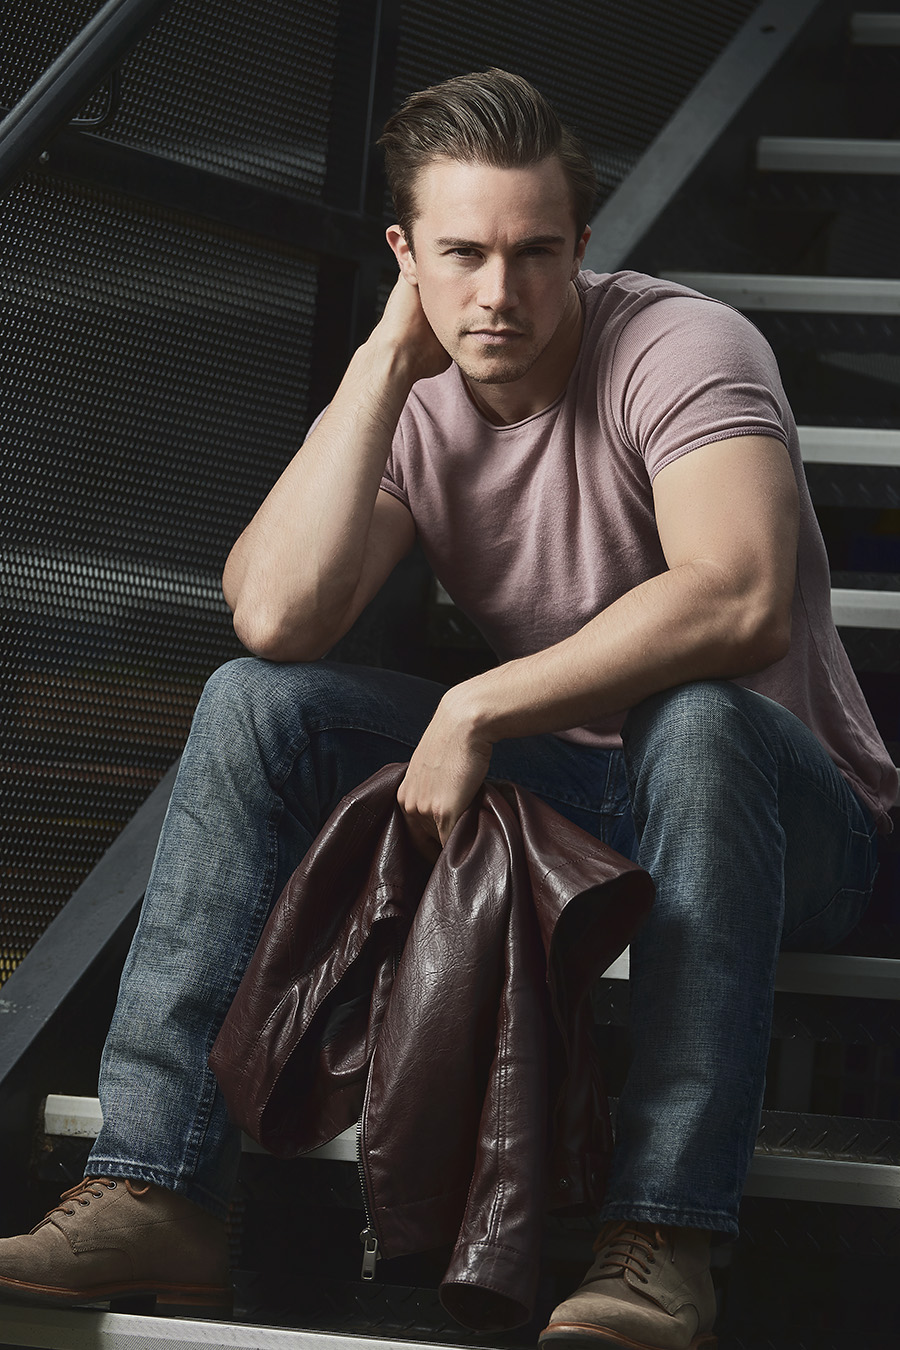 Neal seated on stairwell